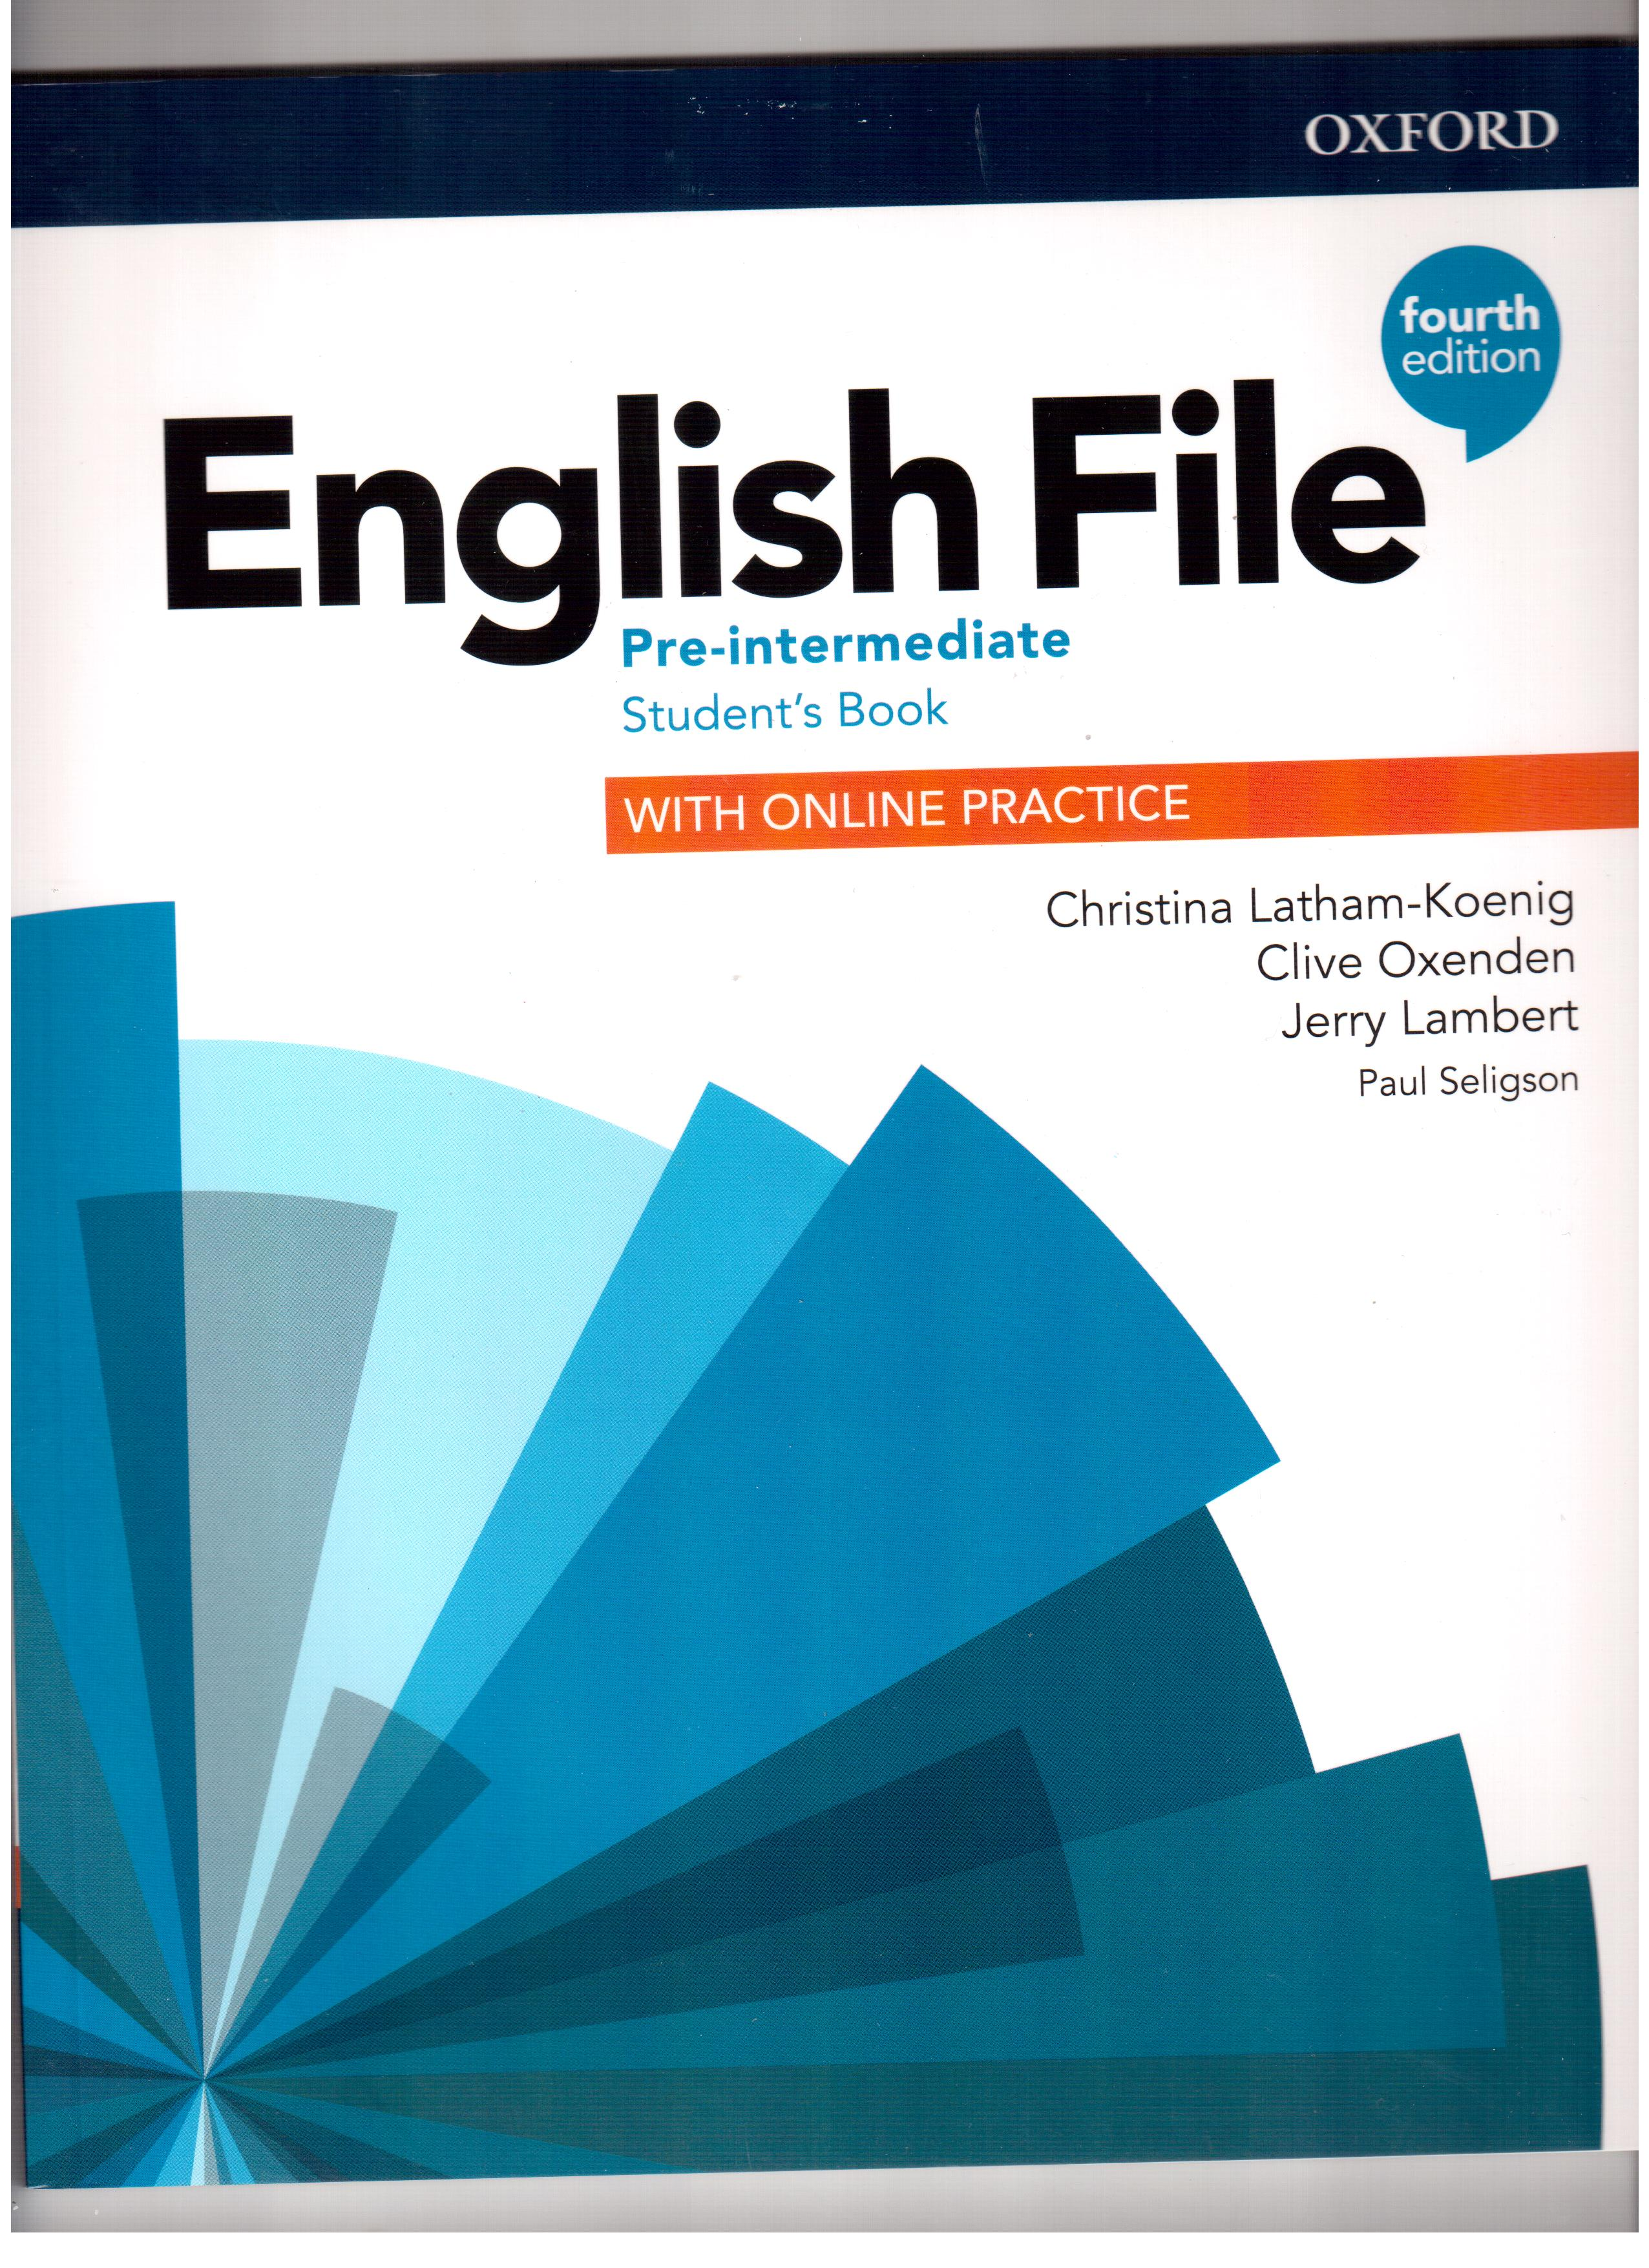 English File 4th Edition Pre-intermediate Student's Book with Online Practice